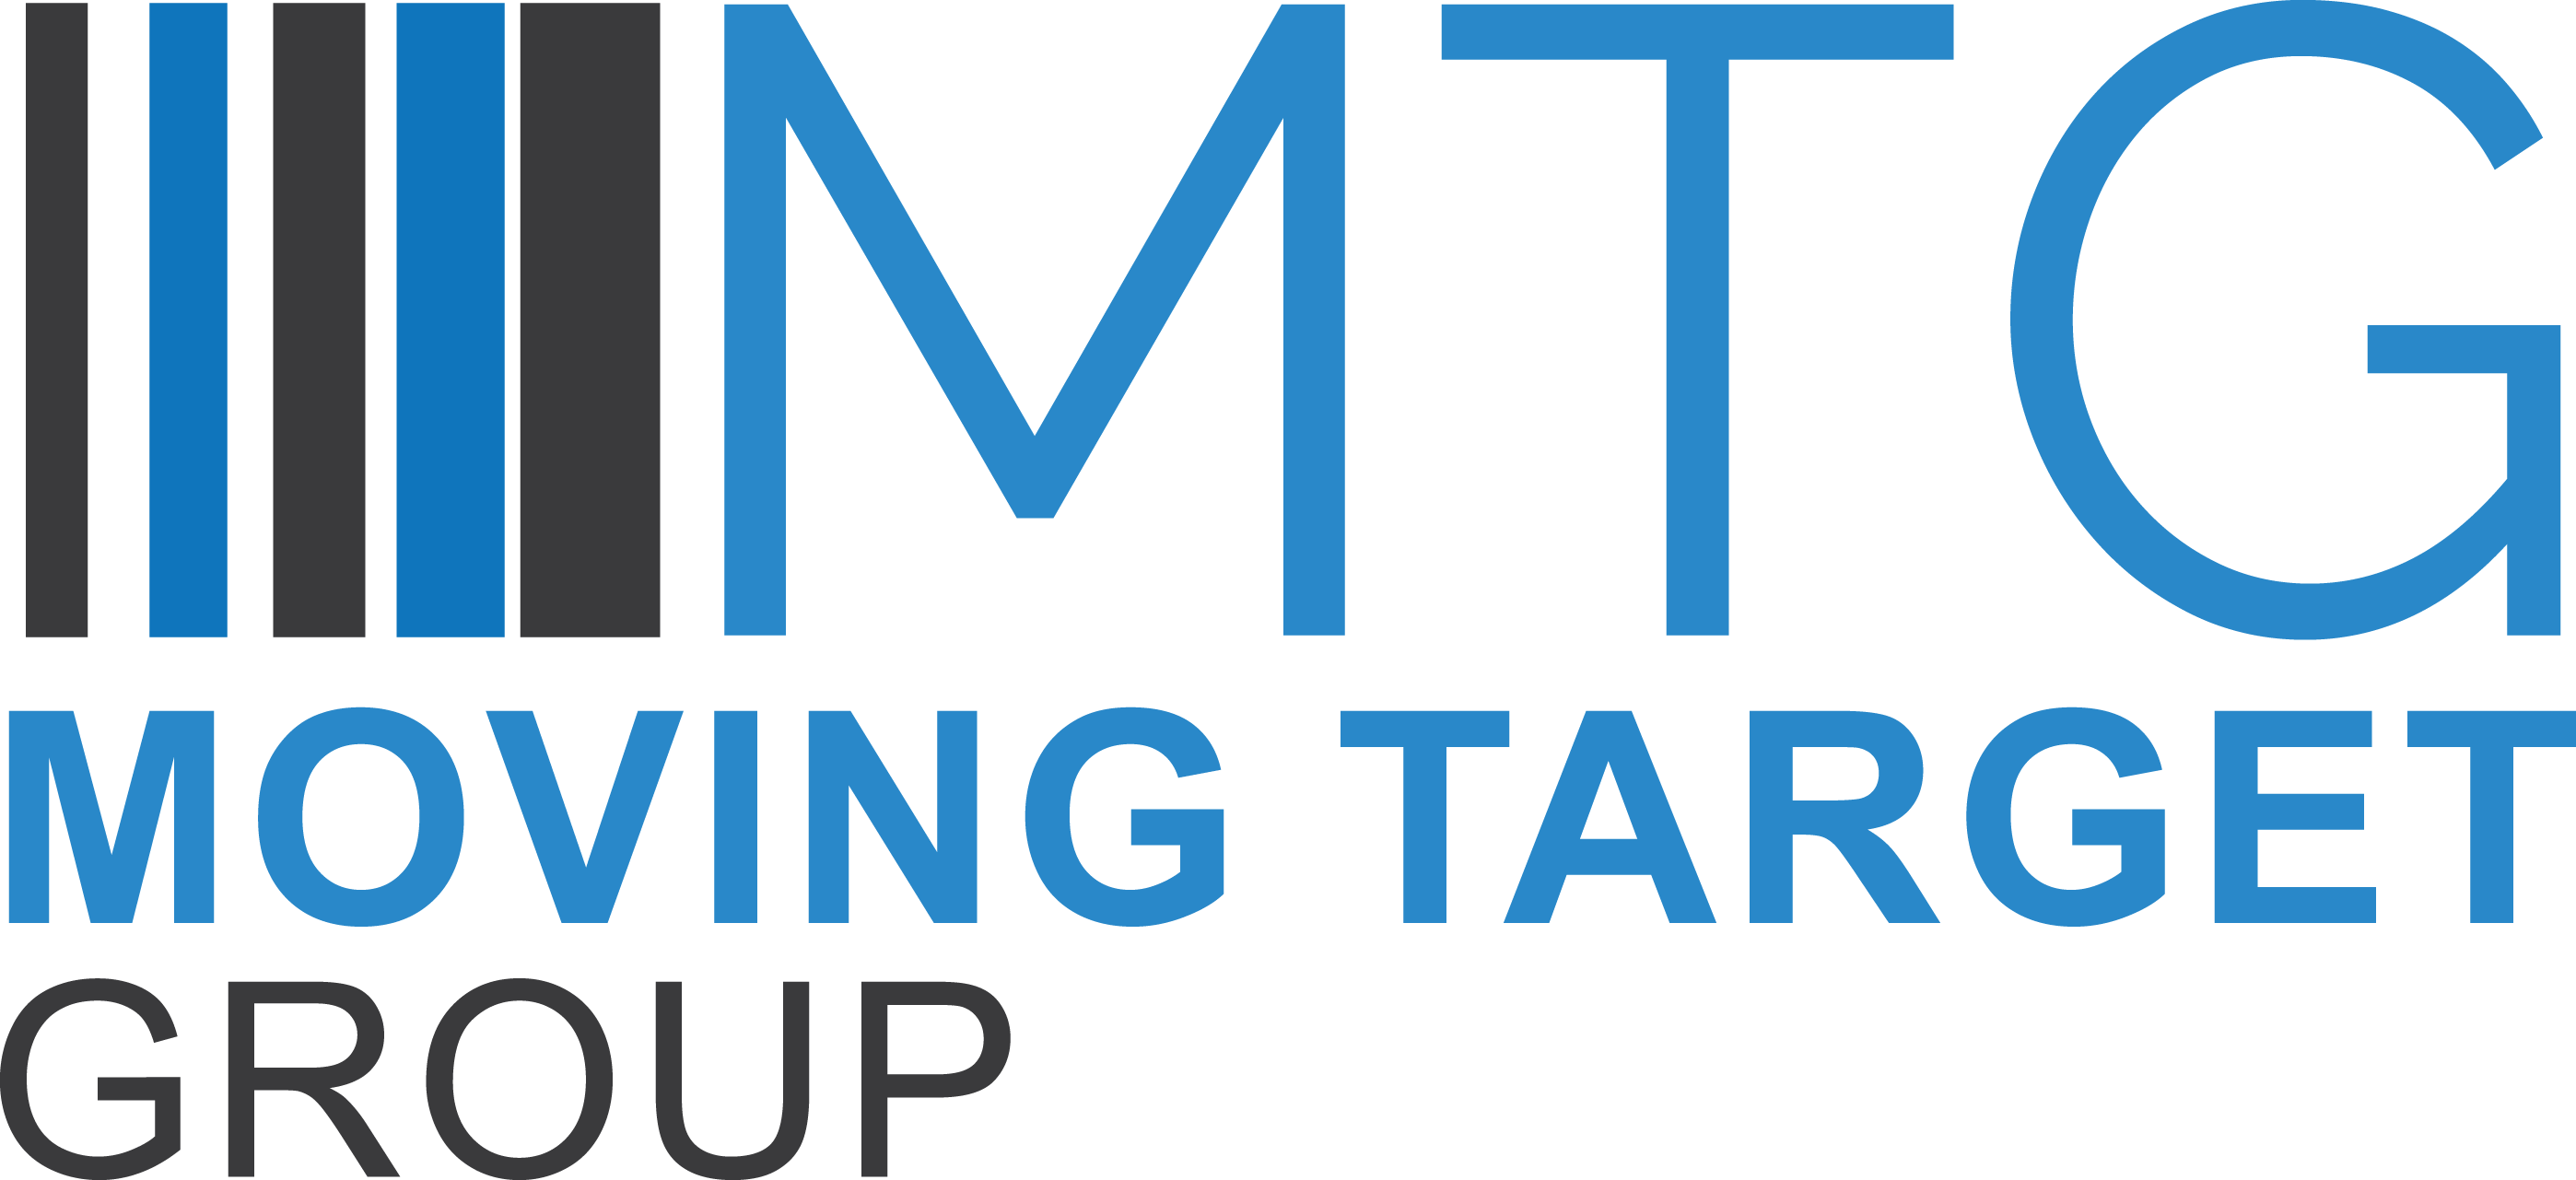 Moving Target Group